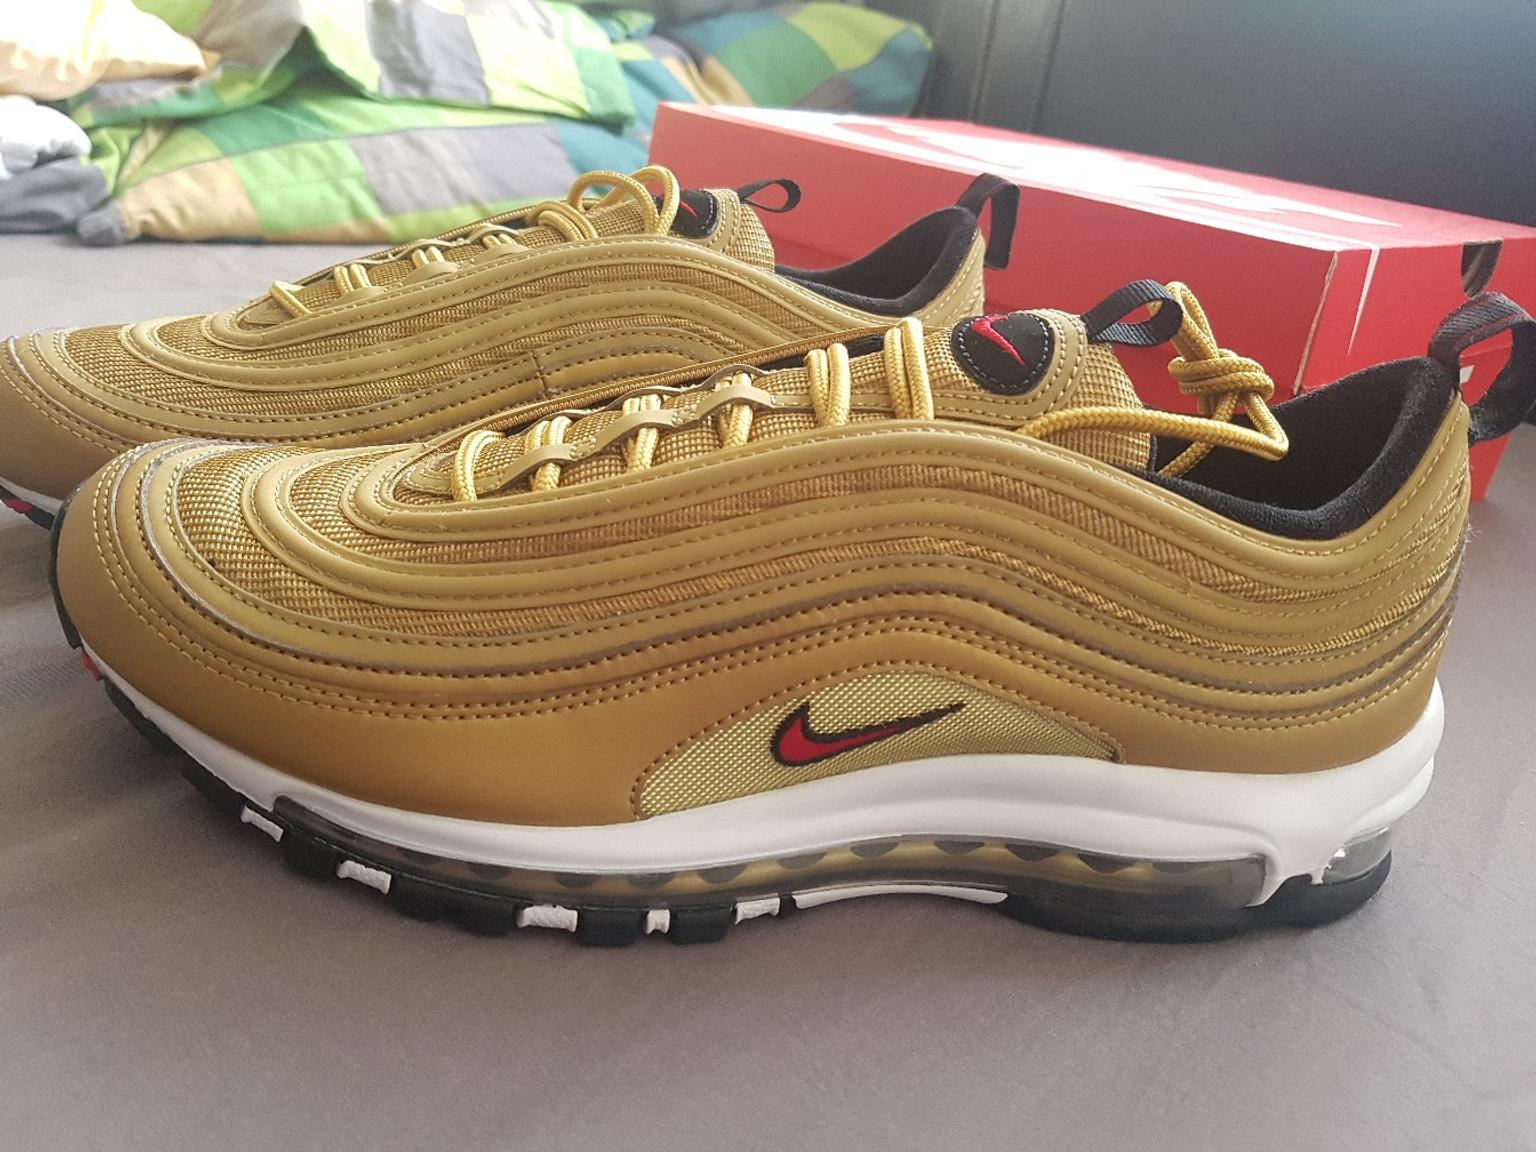 NIKE Air Max 97 Gold Gr. 44 in 80807 München for €290.00 for